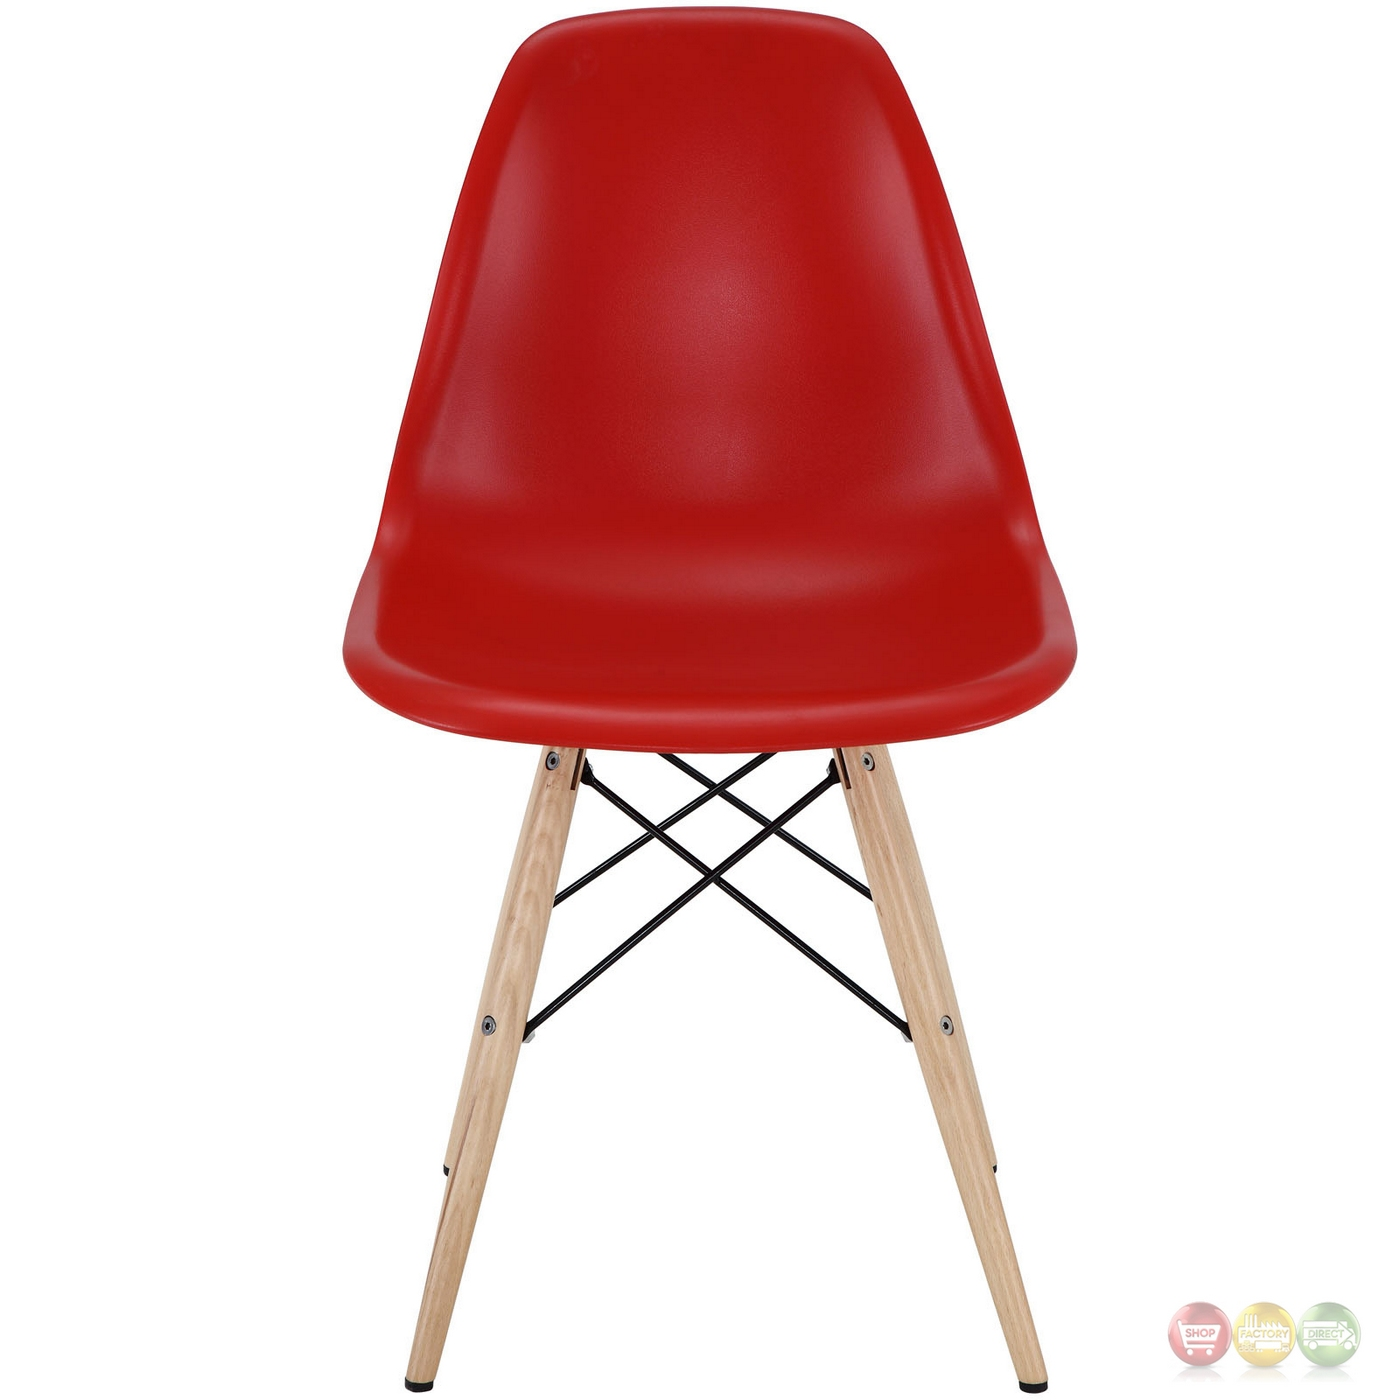 modern plastic chair wheel in lahore pyramid side with wood legs and steel